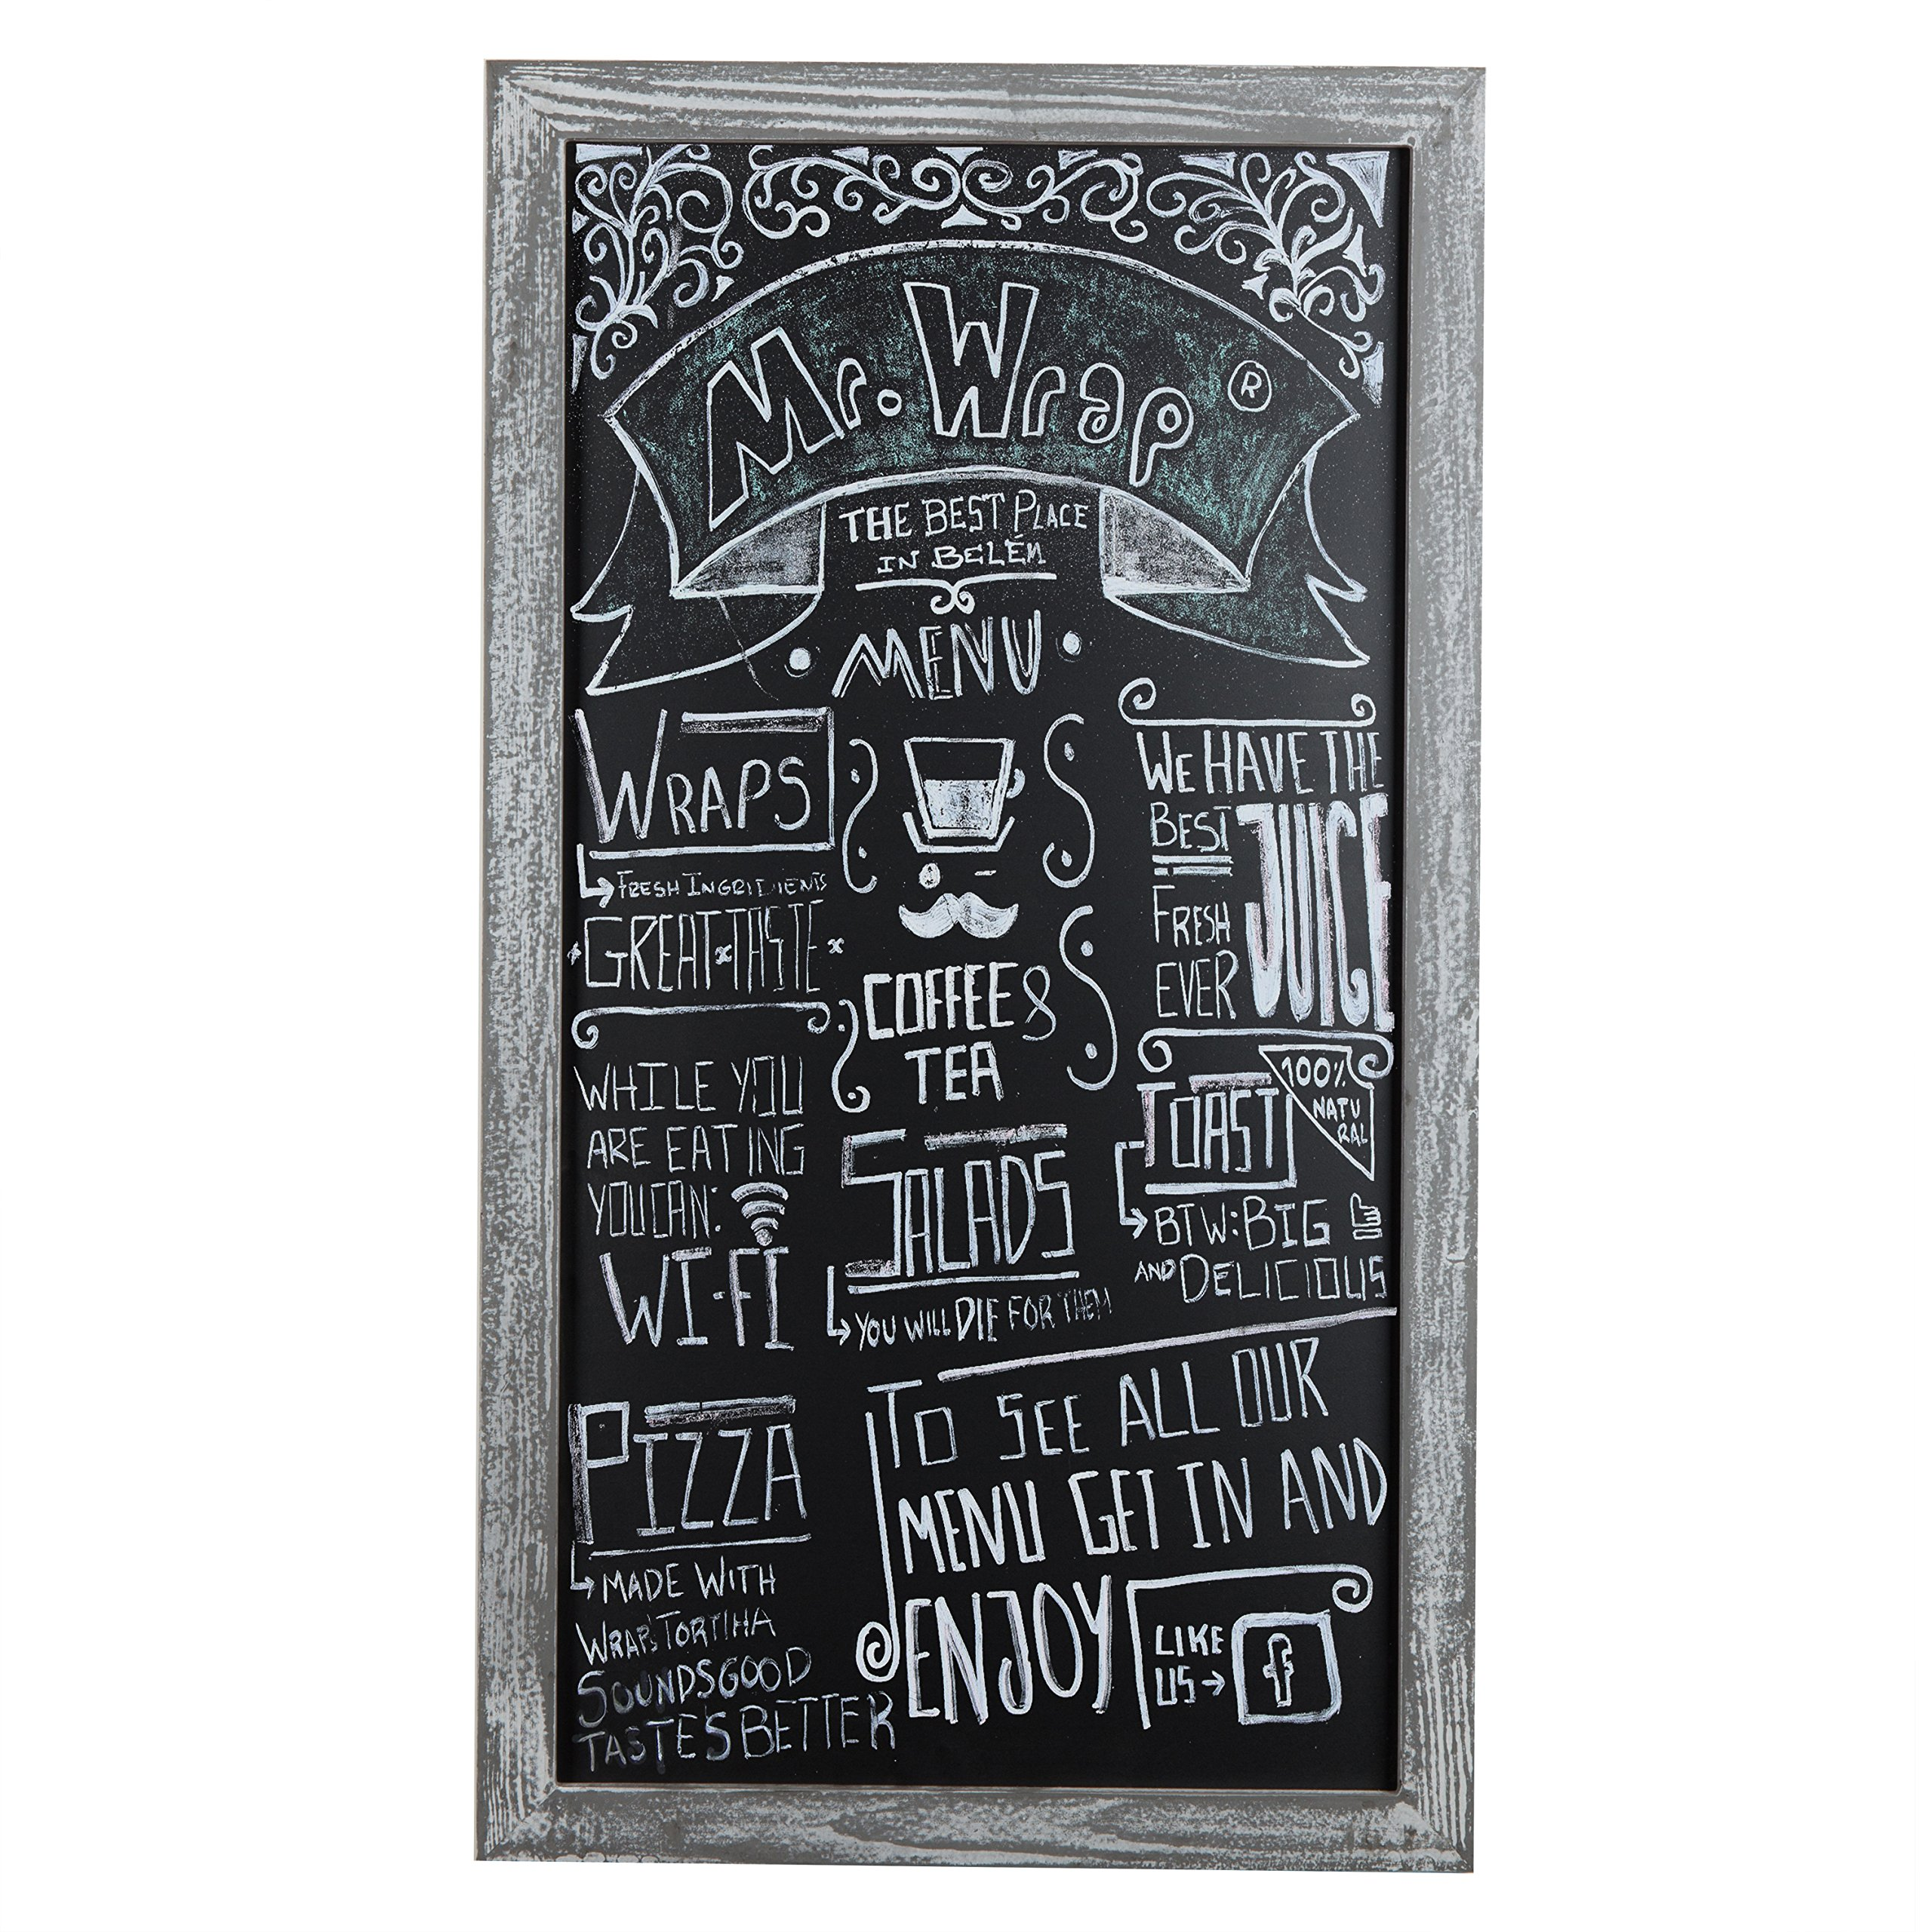 MyGift Rustic 35-Inch Wall Hanging Chalkboard Sign with Distressed Gray Wood Frame by MyGift